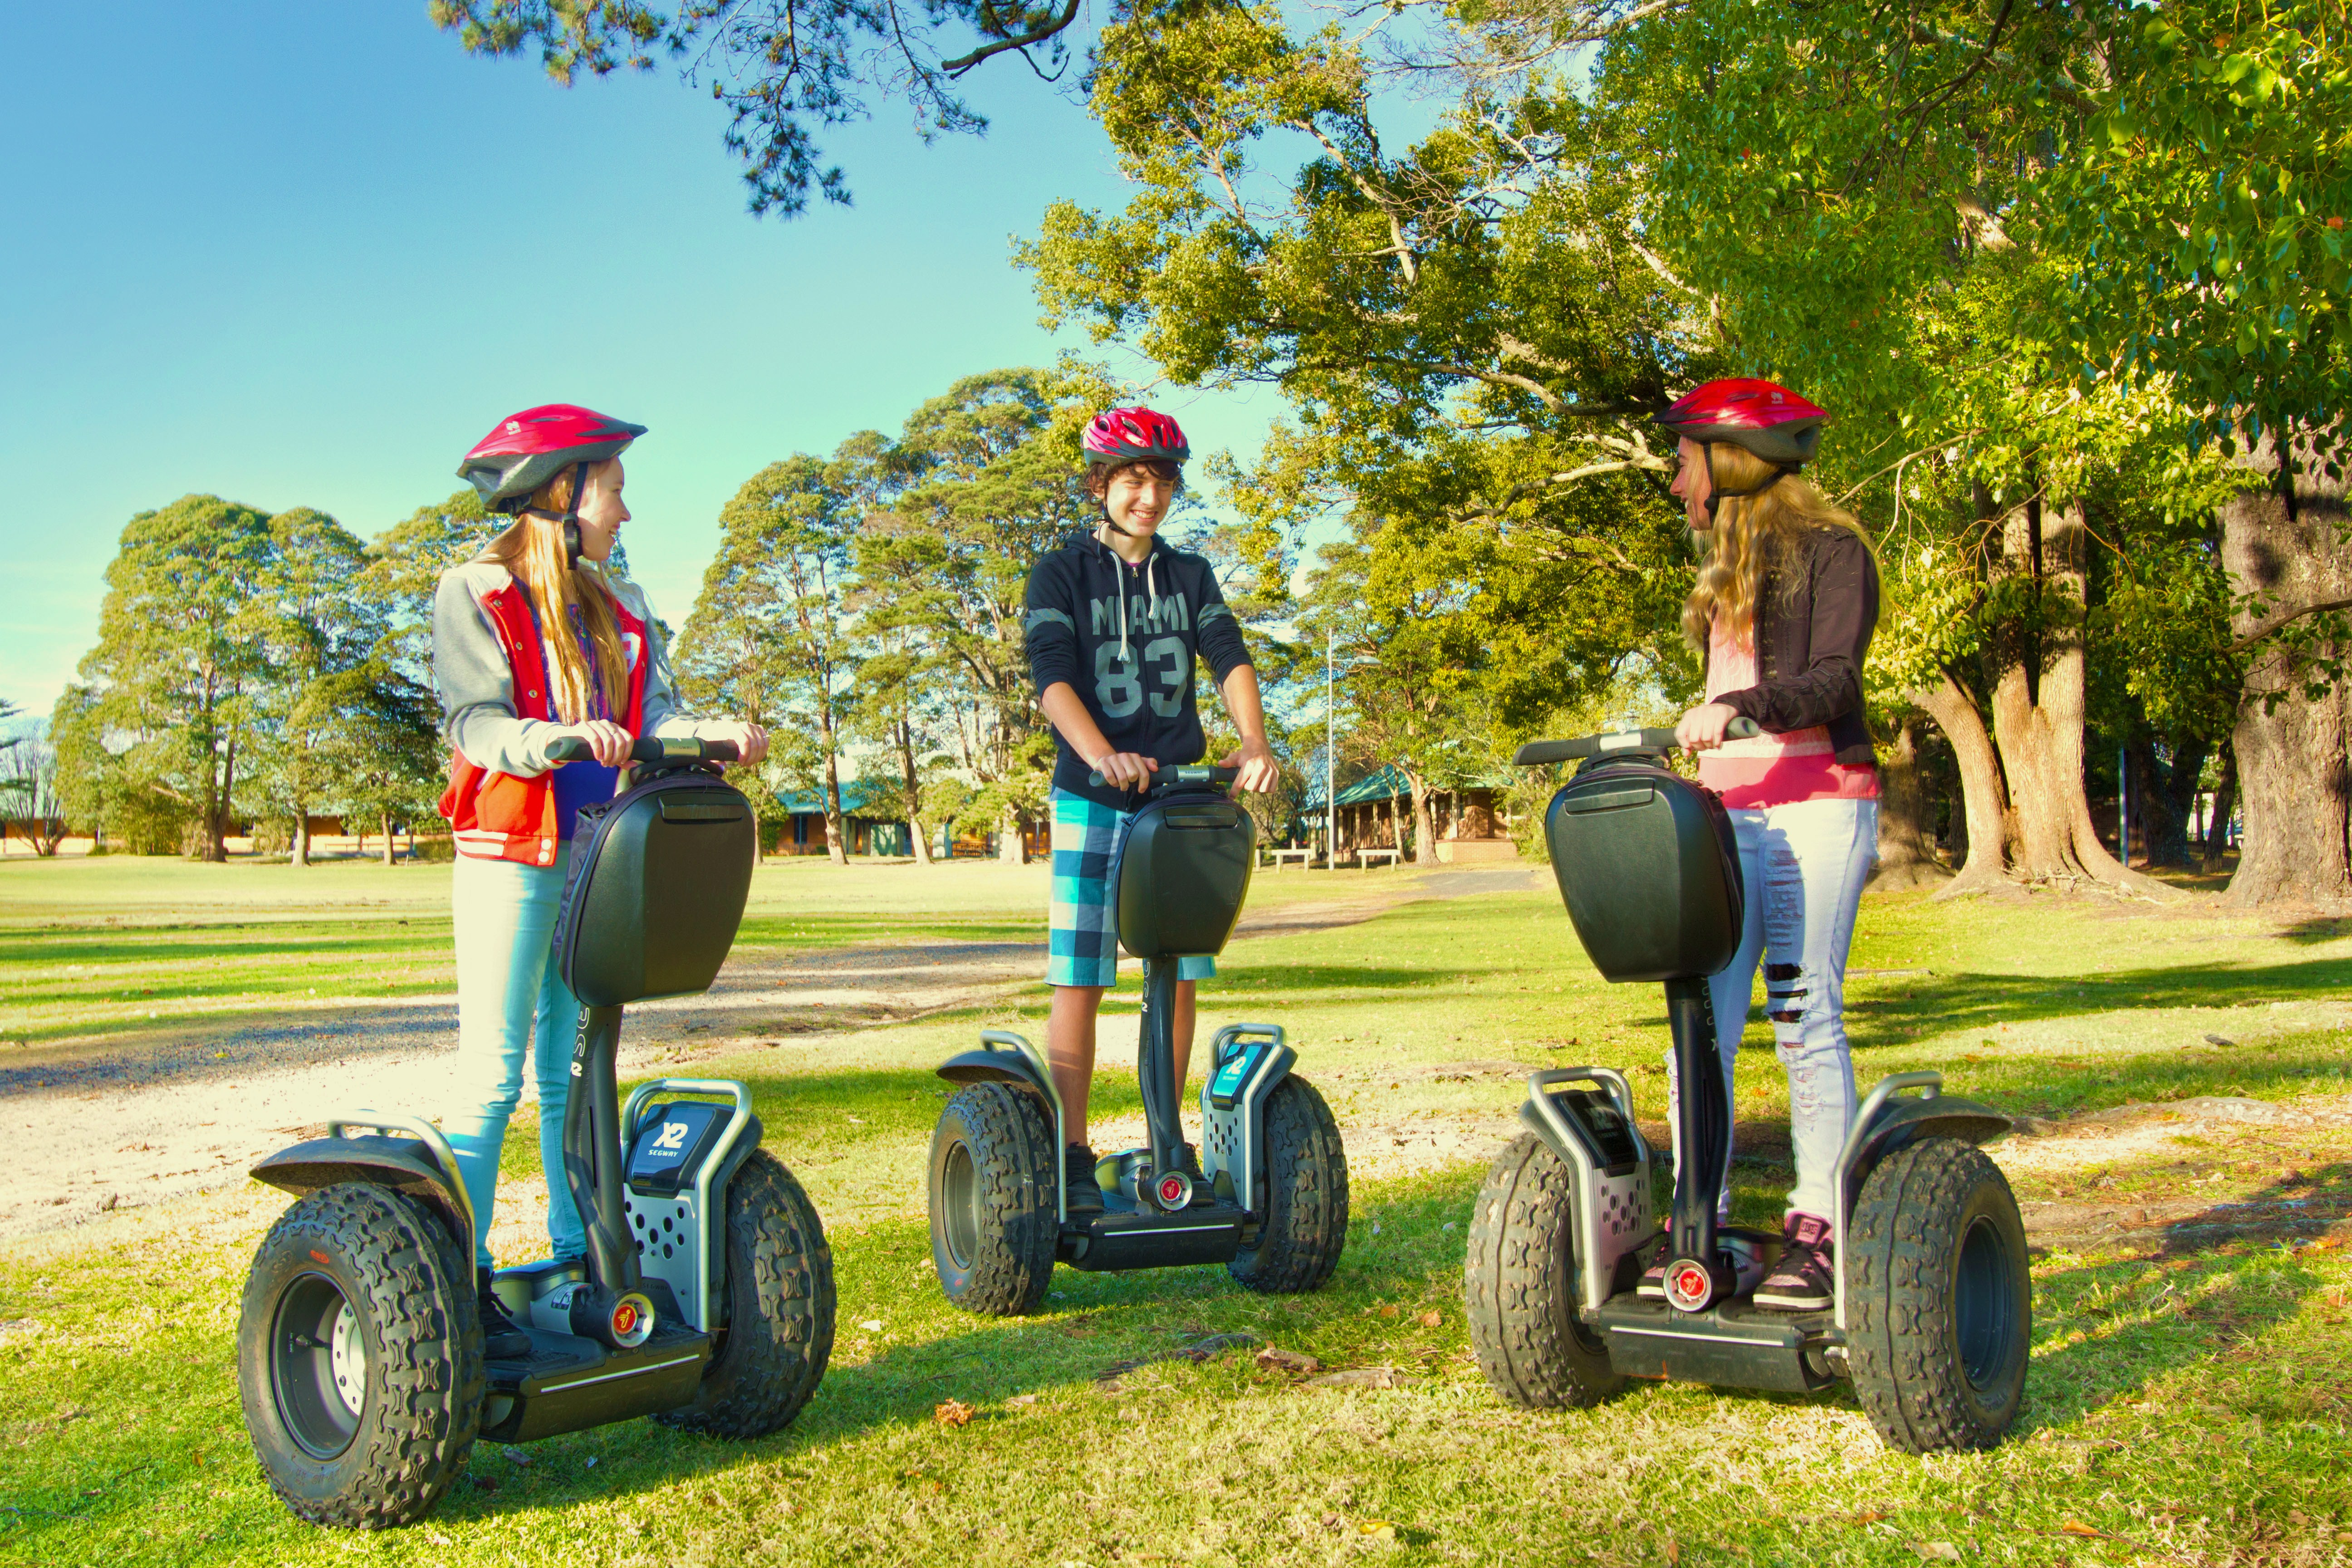 segway-for-students-image.jpg